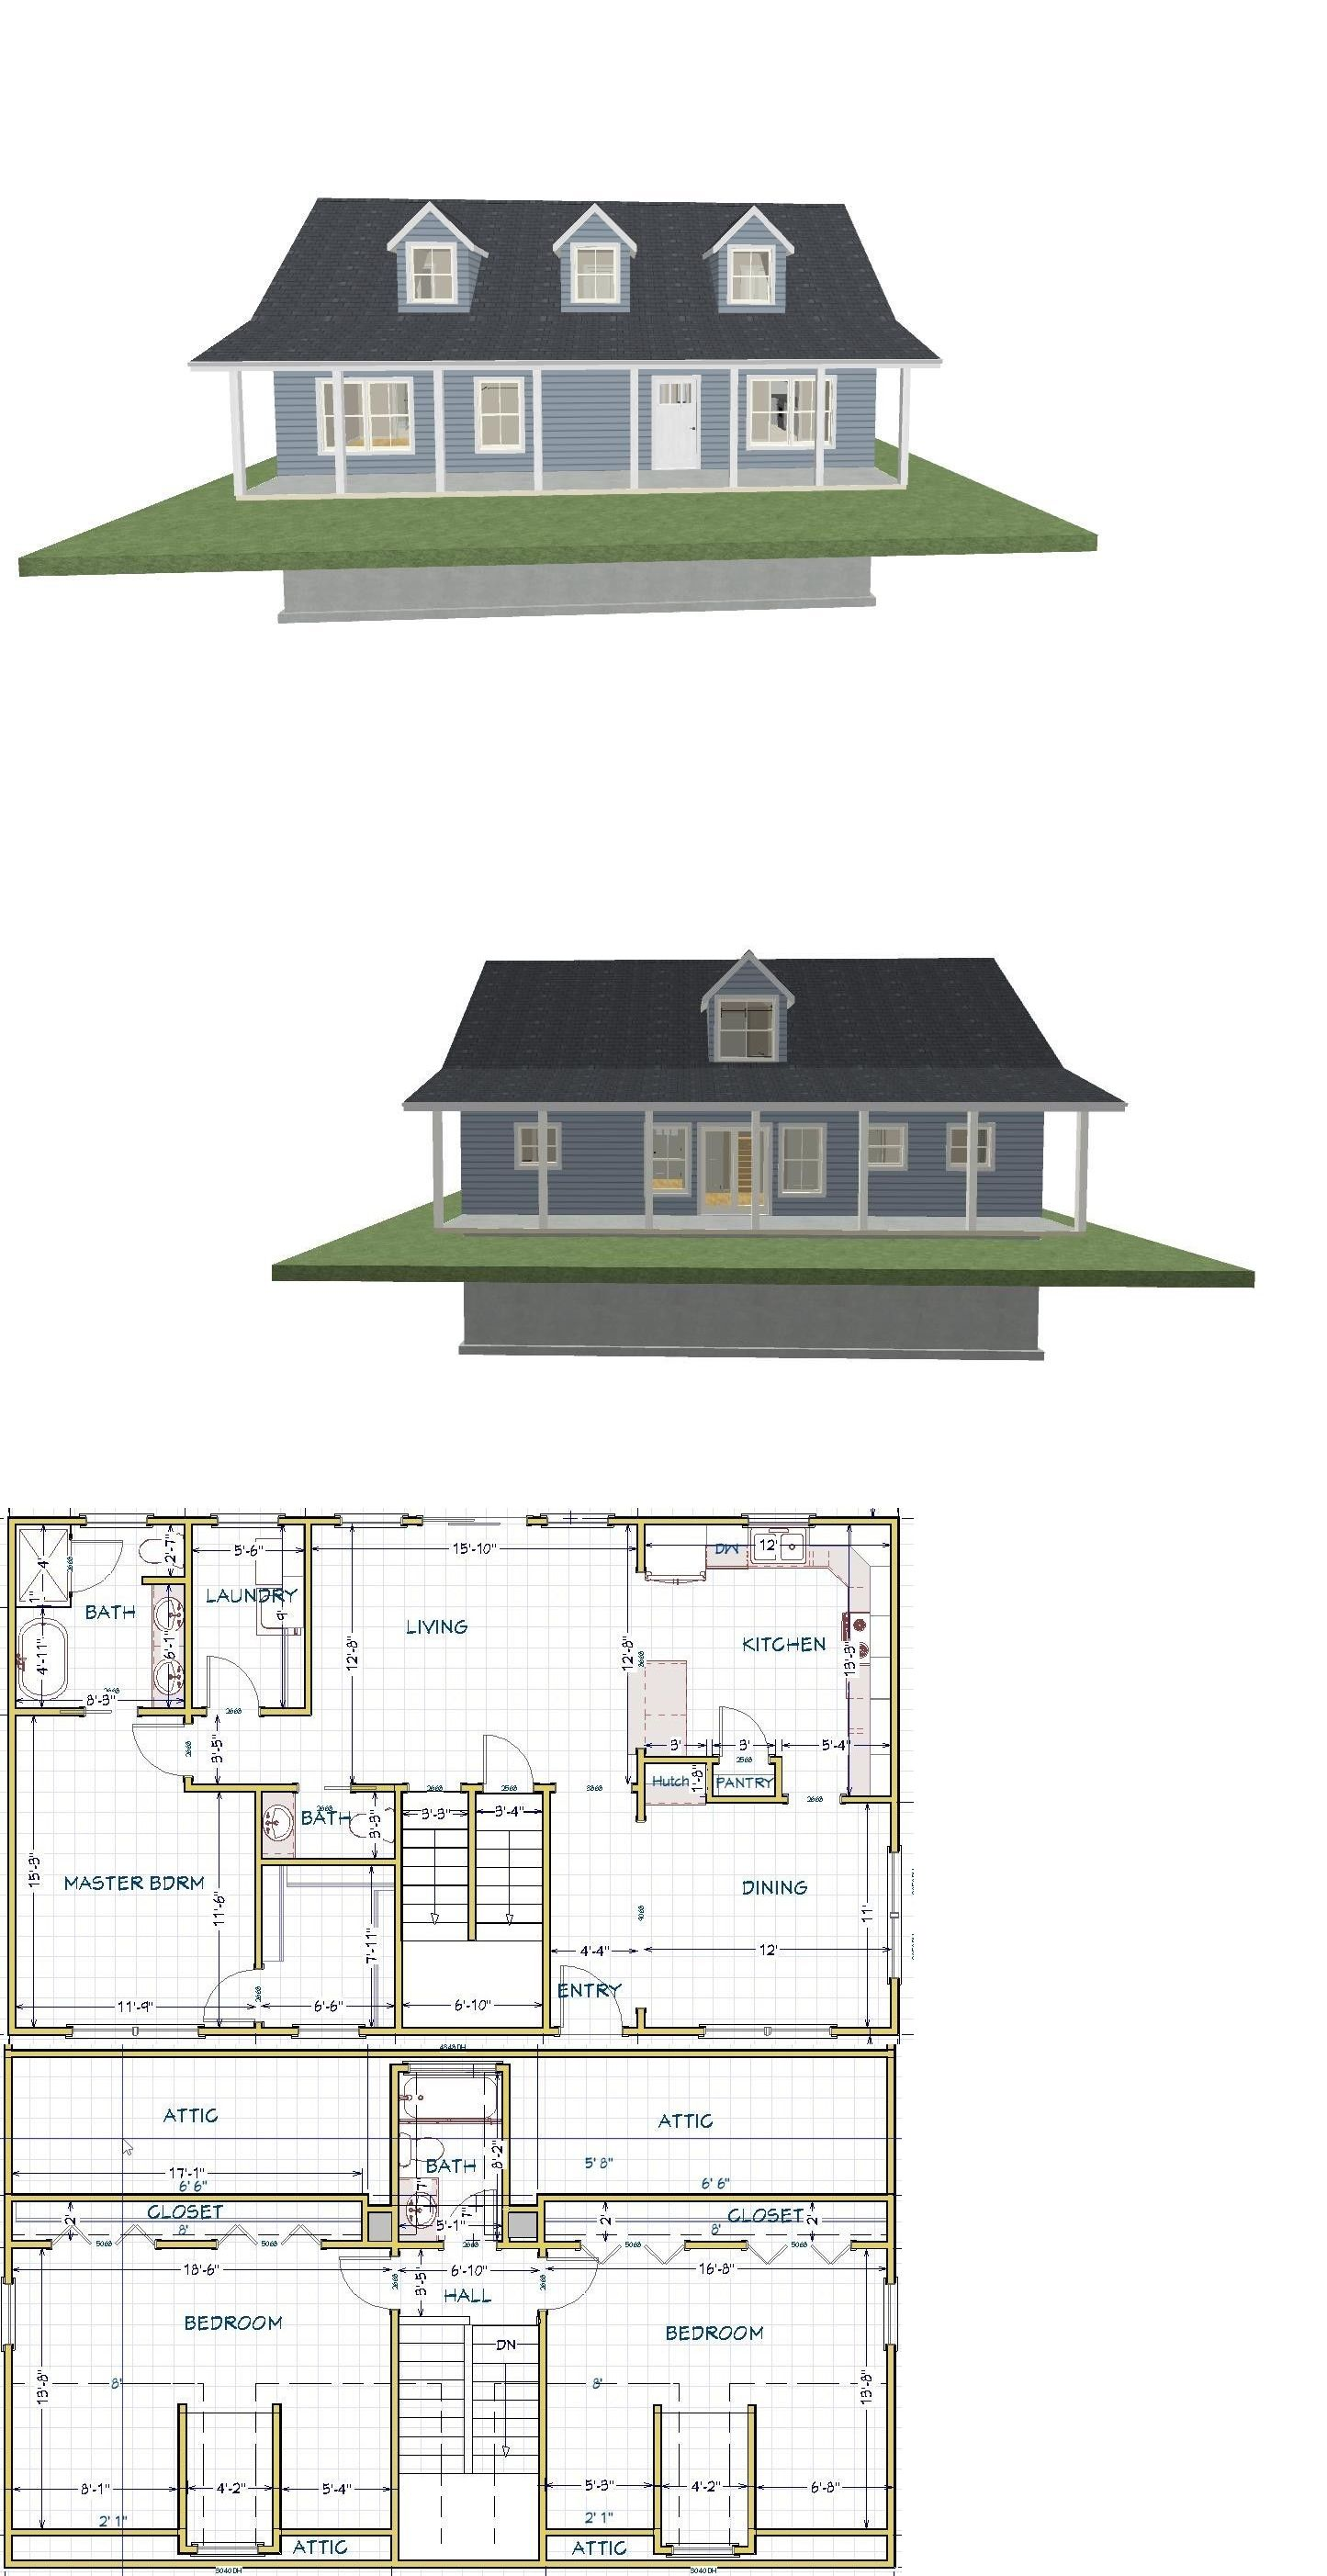 Building Plans And Blueprints 42130 Small House Plan Ready To Build 2 Story 1788 Sf Basement Pl1803bs B House Plans Small House Plan Building Plans